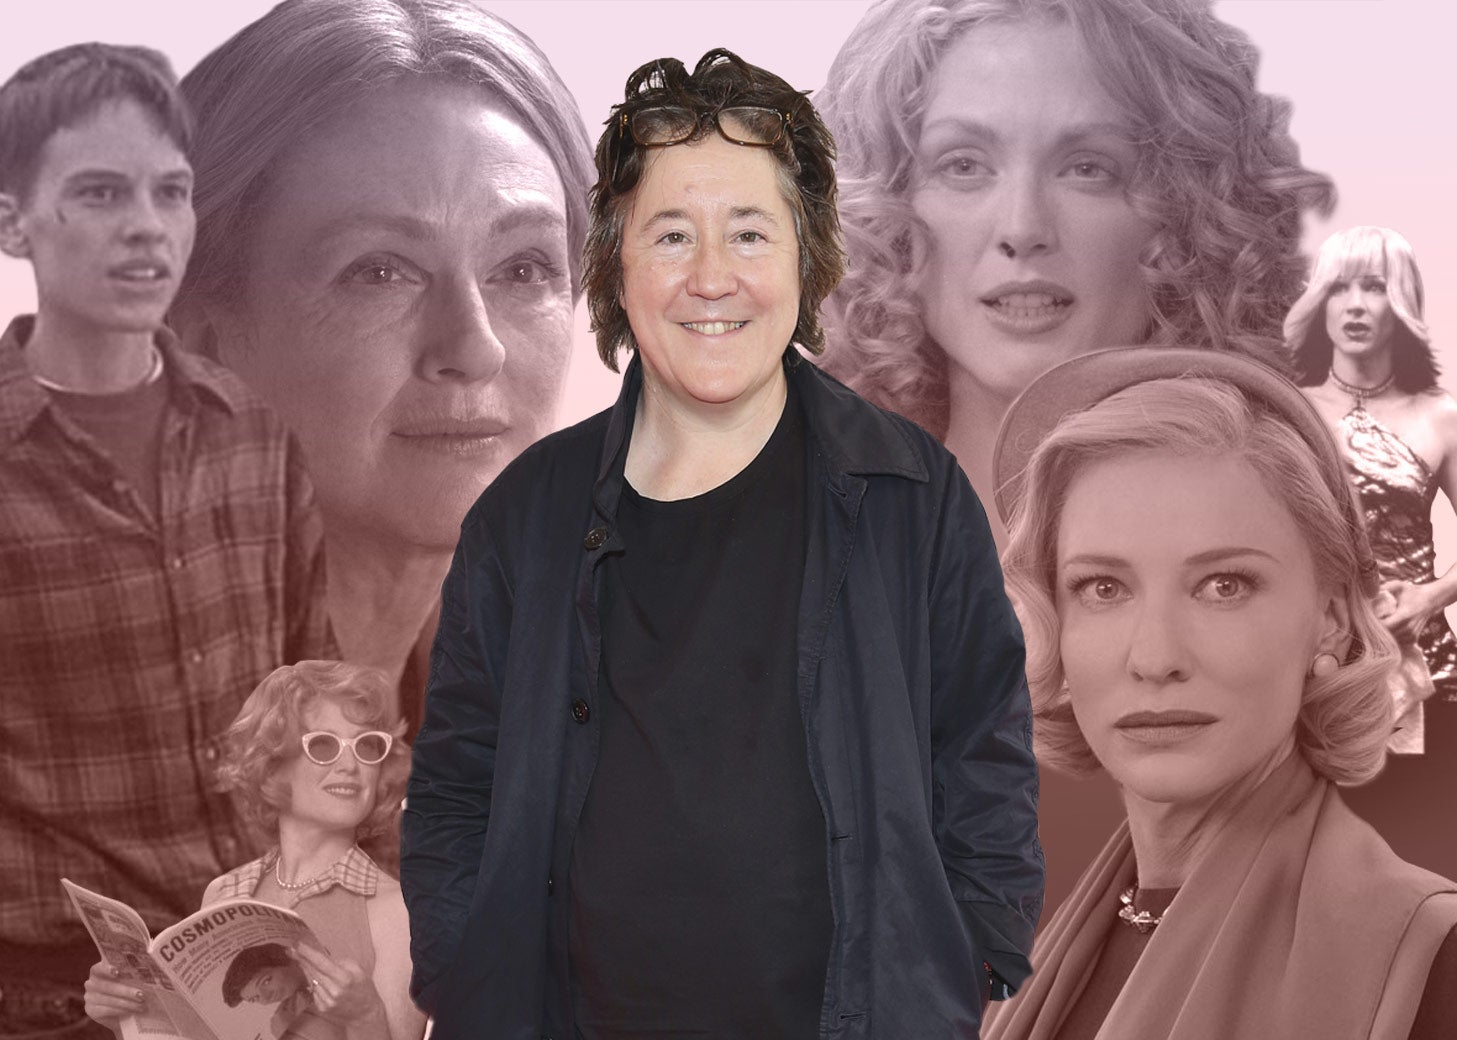 Christine Vachon's films—from Boys Don't Cry to Hedwig and the Angry Inch to Carol to her new film Wonderstruck—center on the kind of protagonists rarely if ever found in mainstream Hollywood cinema.